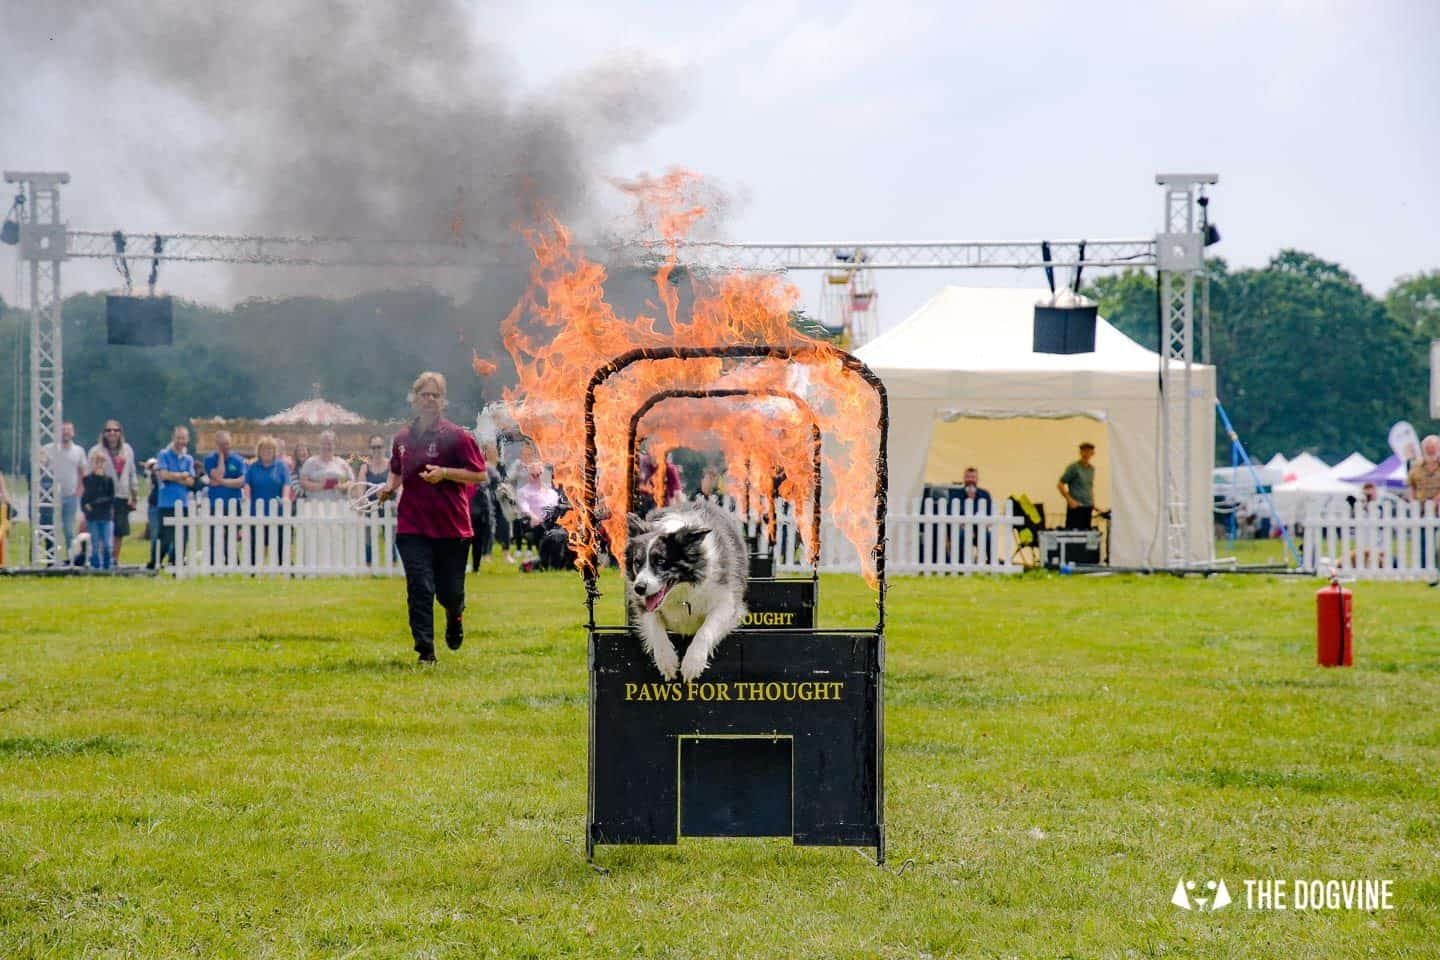 Dogstival New Forest Dog Festival Is A Barking Success - Paws for Thought Dog Display Team